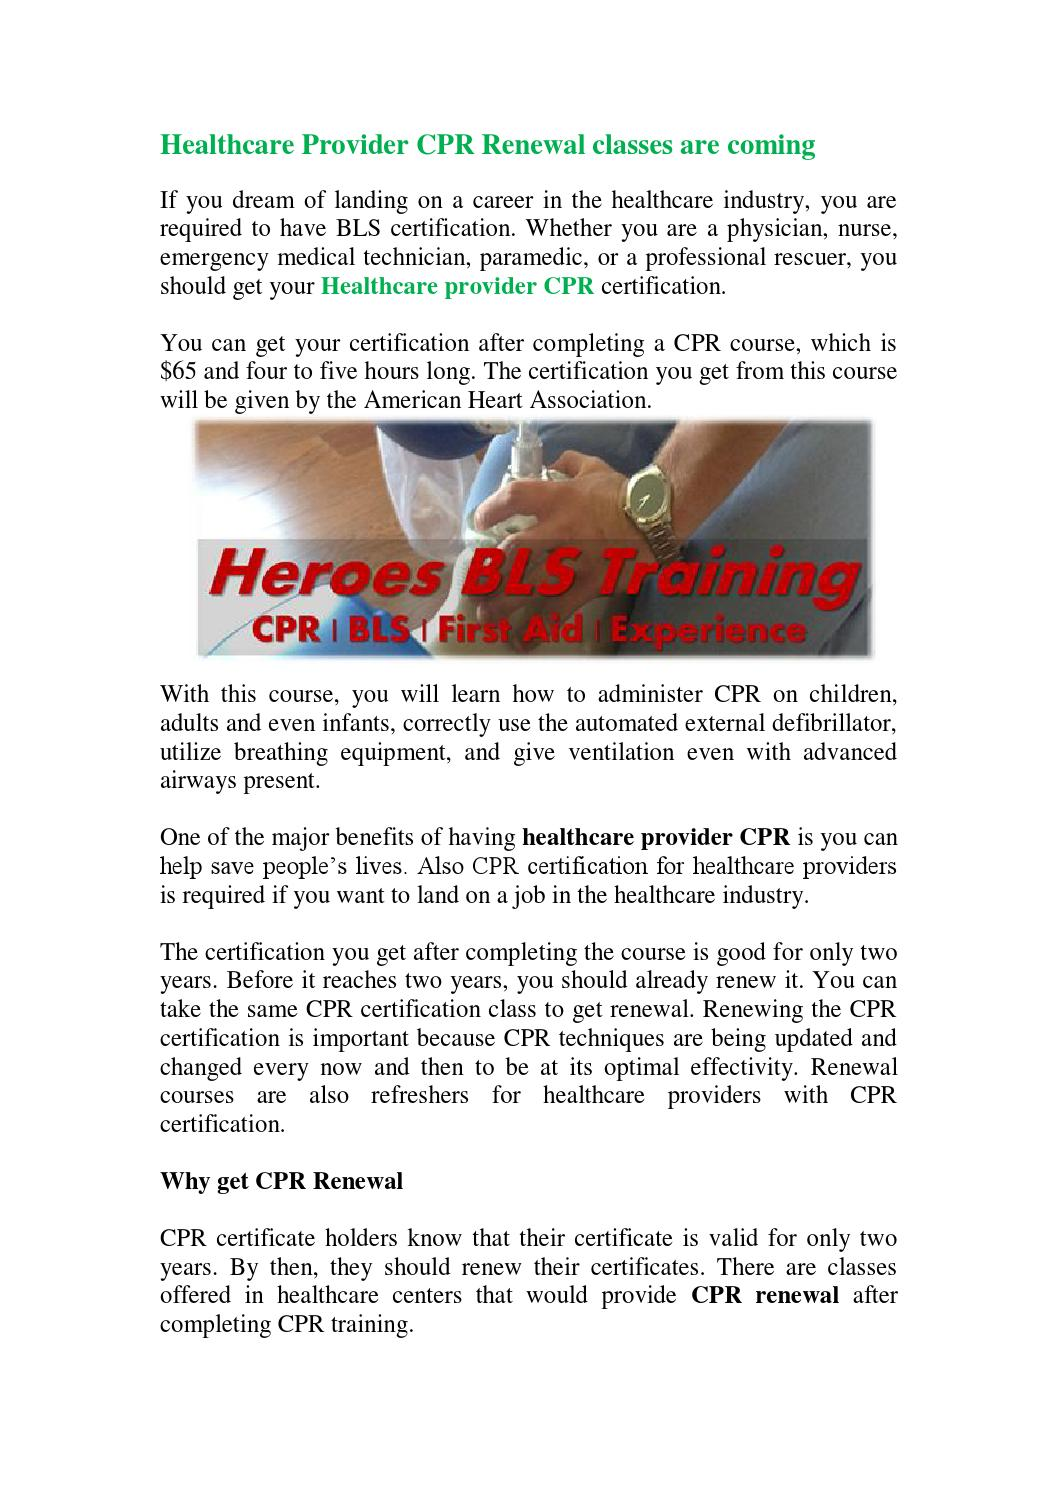 Healthcare provider cpr renewal classes are coming by thomas healthcare provider cpr renewal classes are coming by thomas angeulla issuu xflitez Images